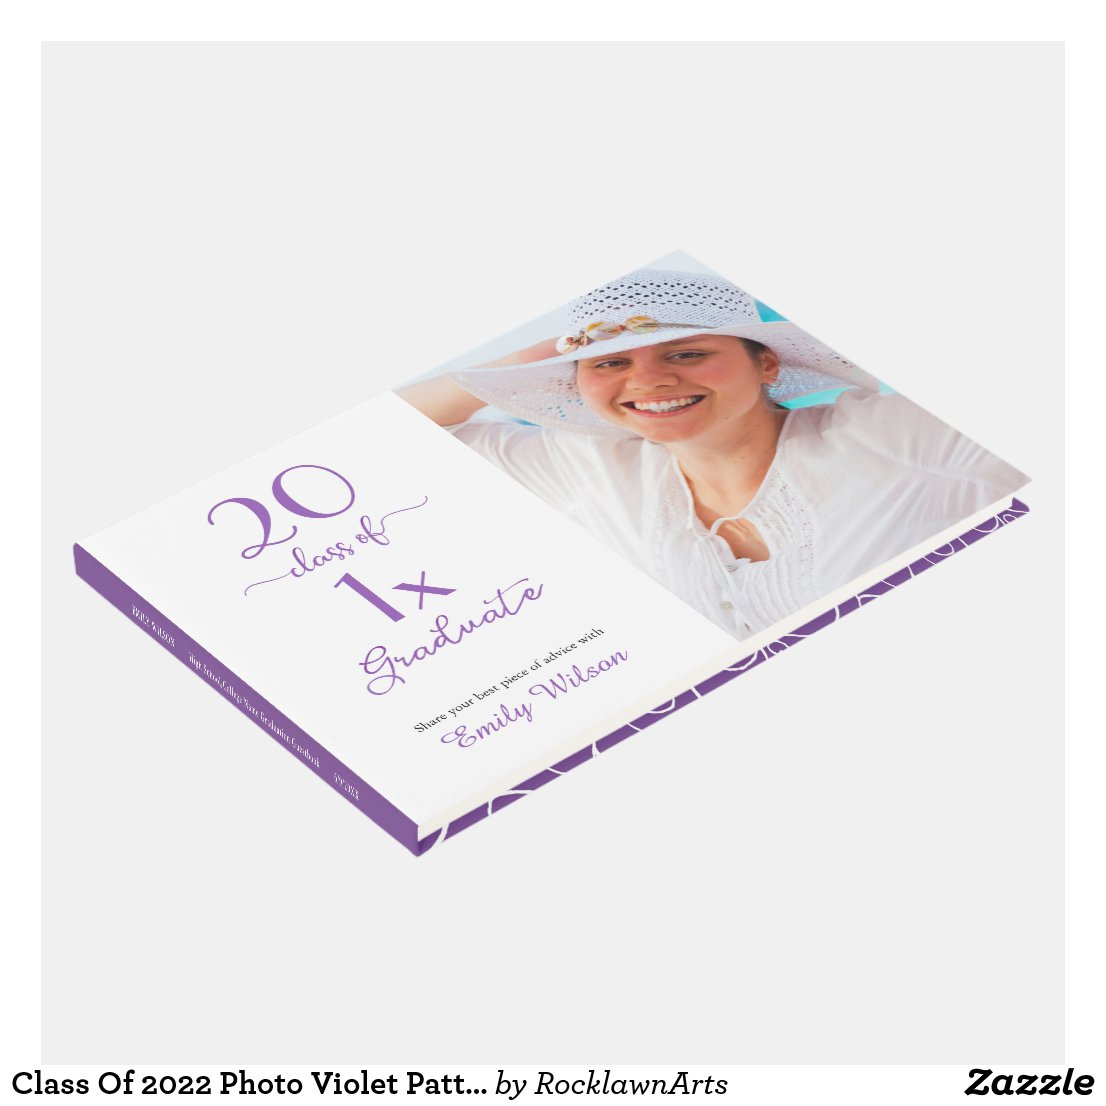 Class Of [YEAR] Photo Violet Pattern Graduation Guest Book